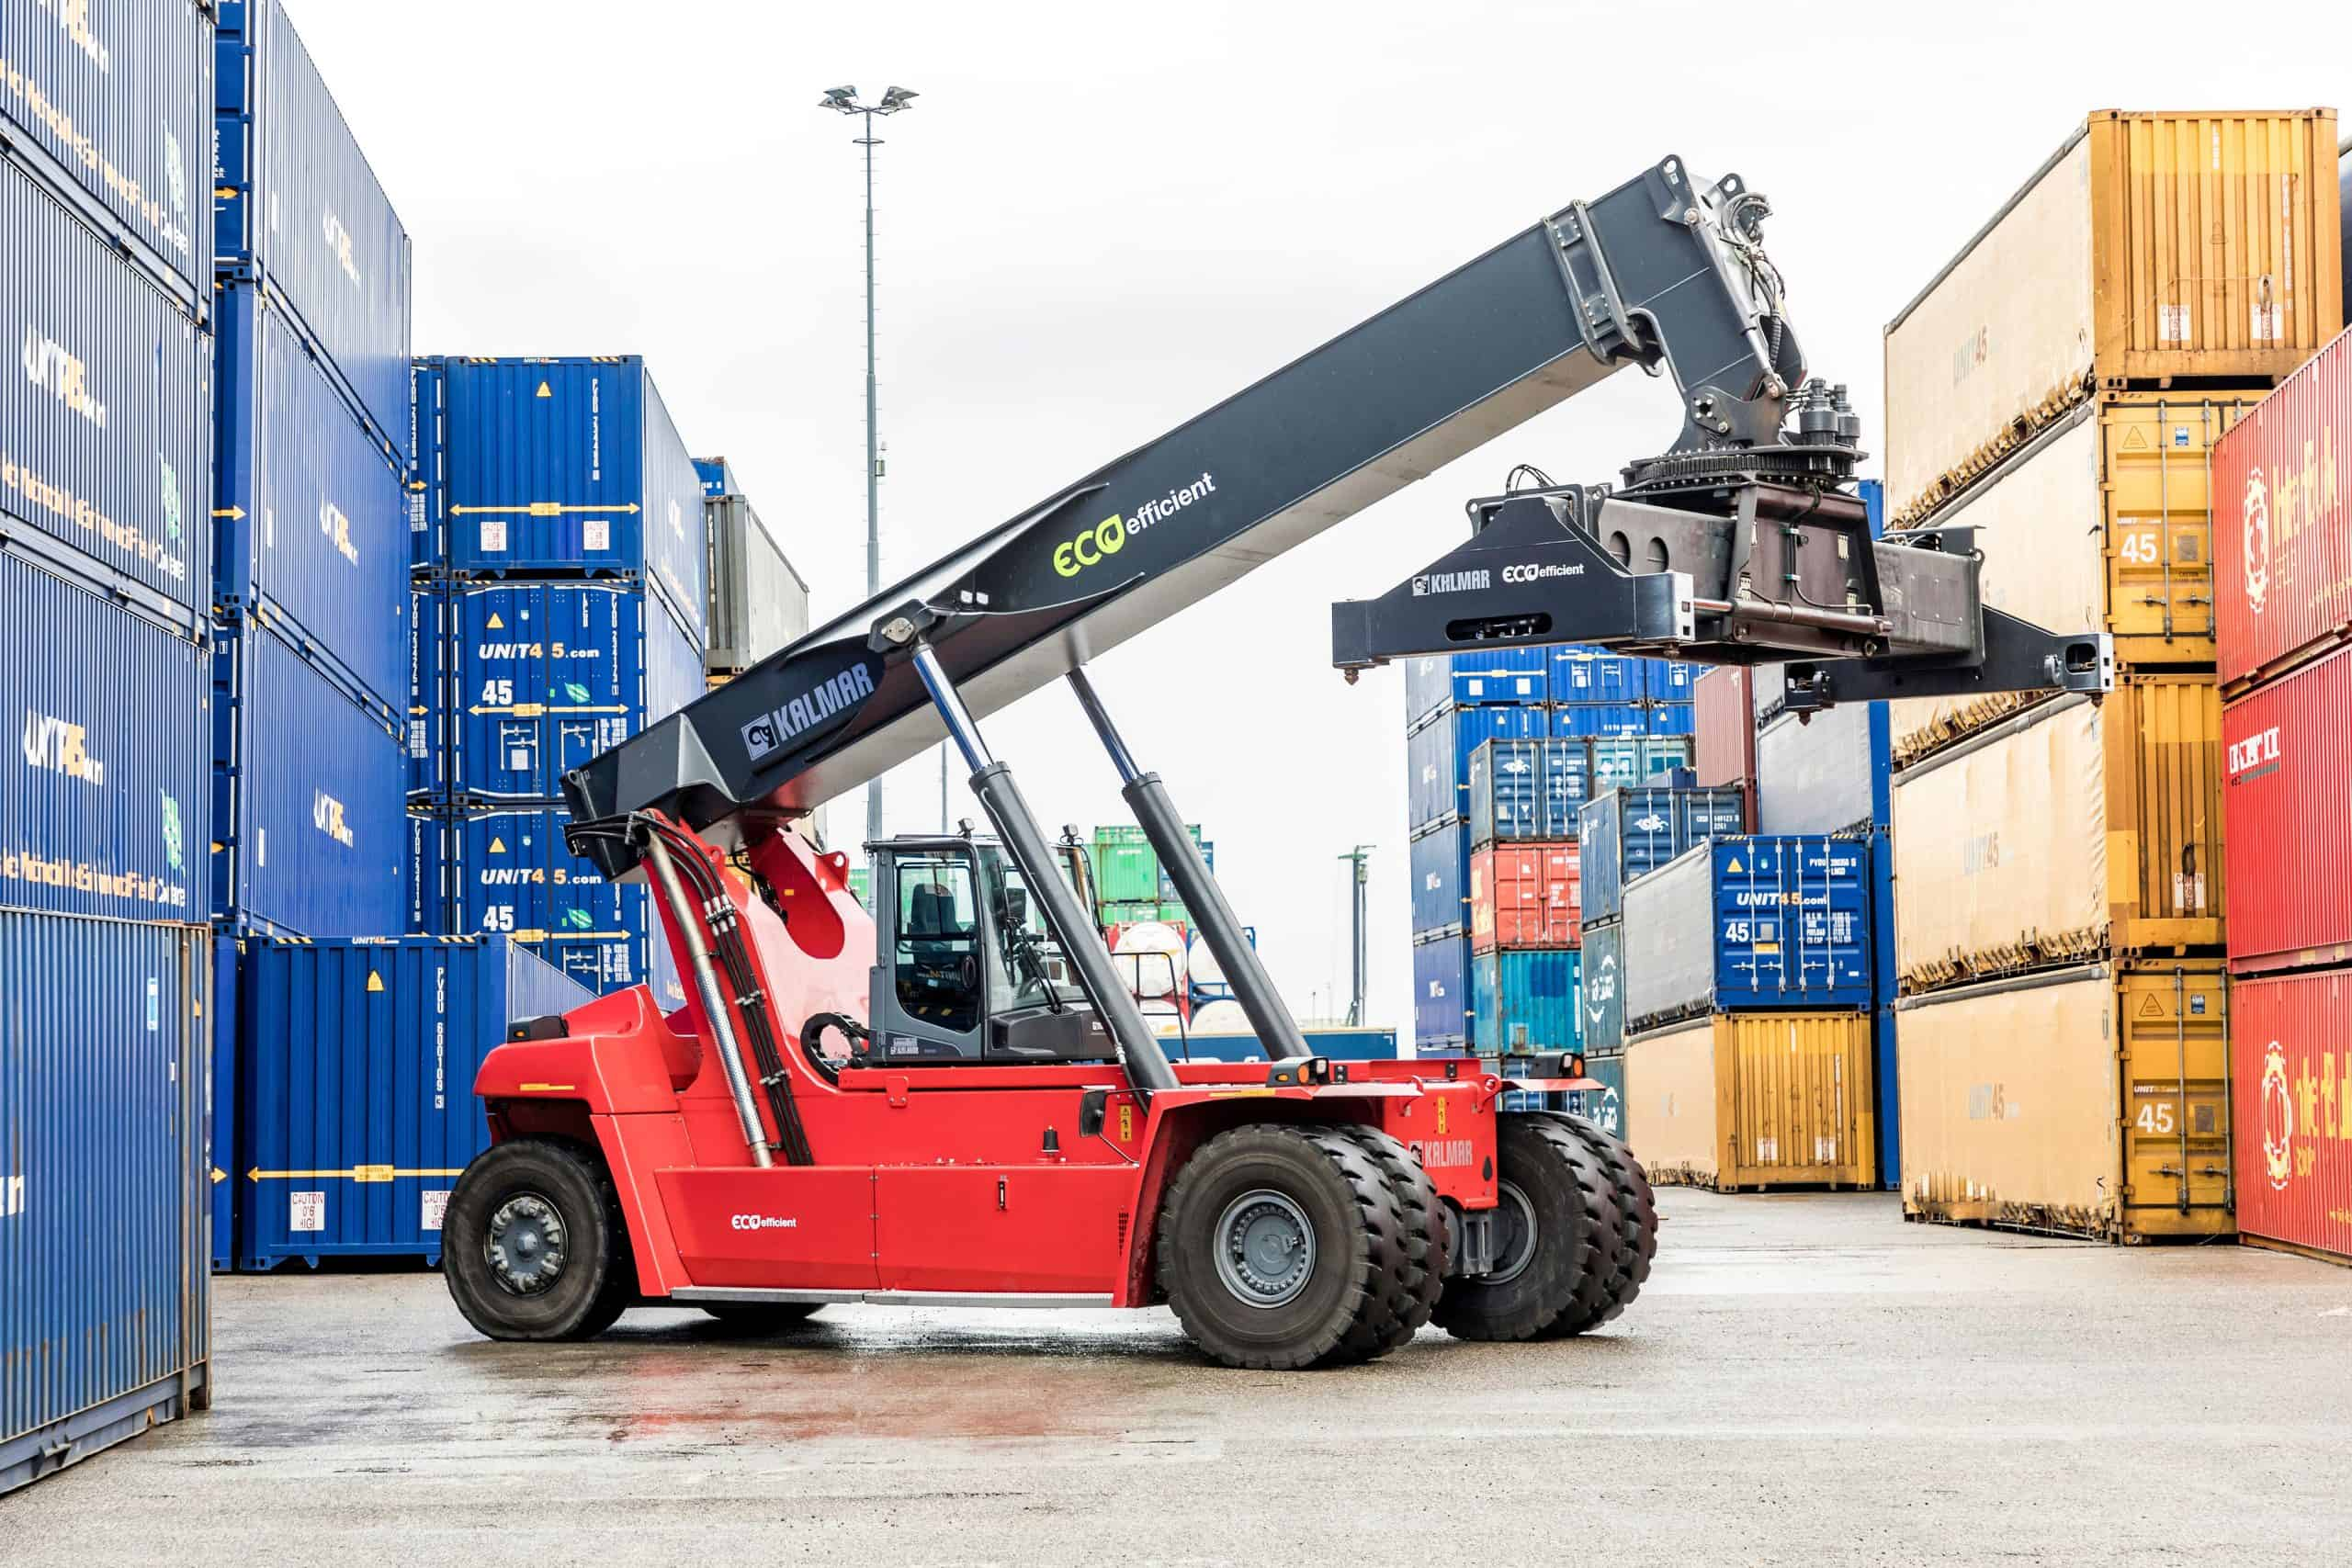 Kalmar to deliver its first eco reachstacker in Indonesia